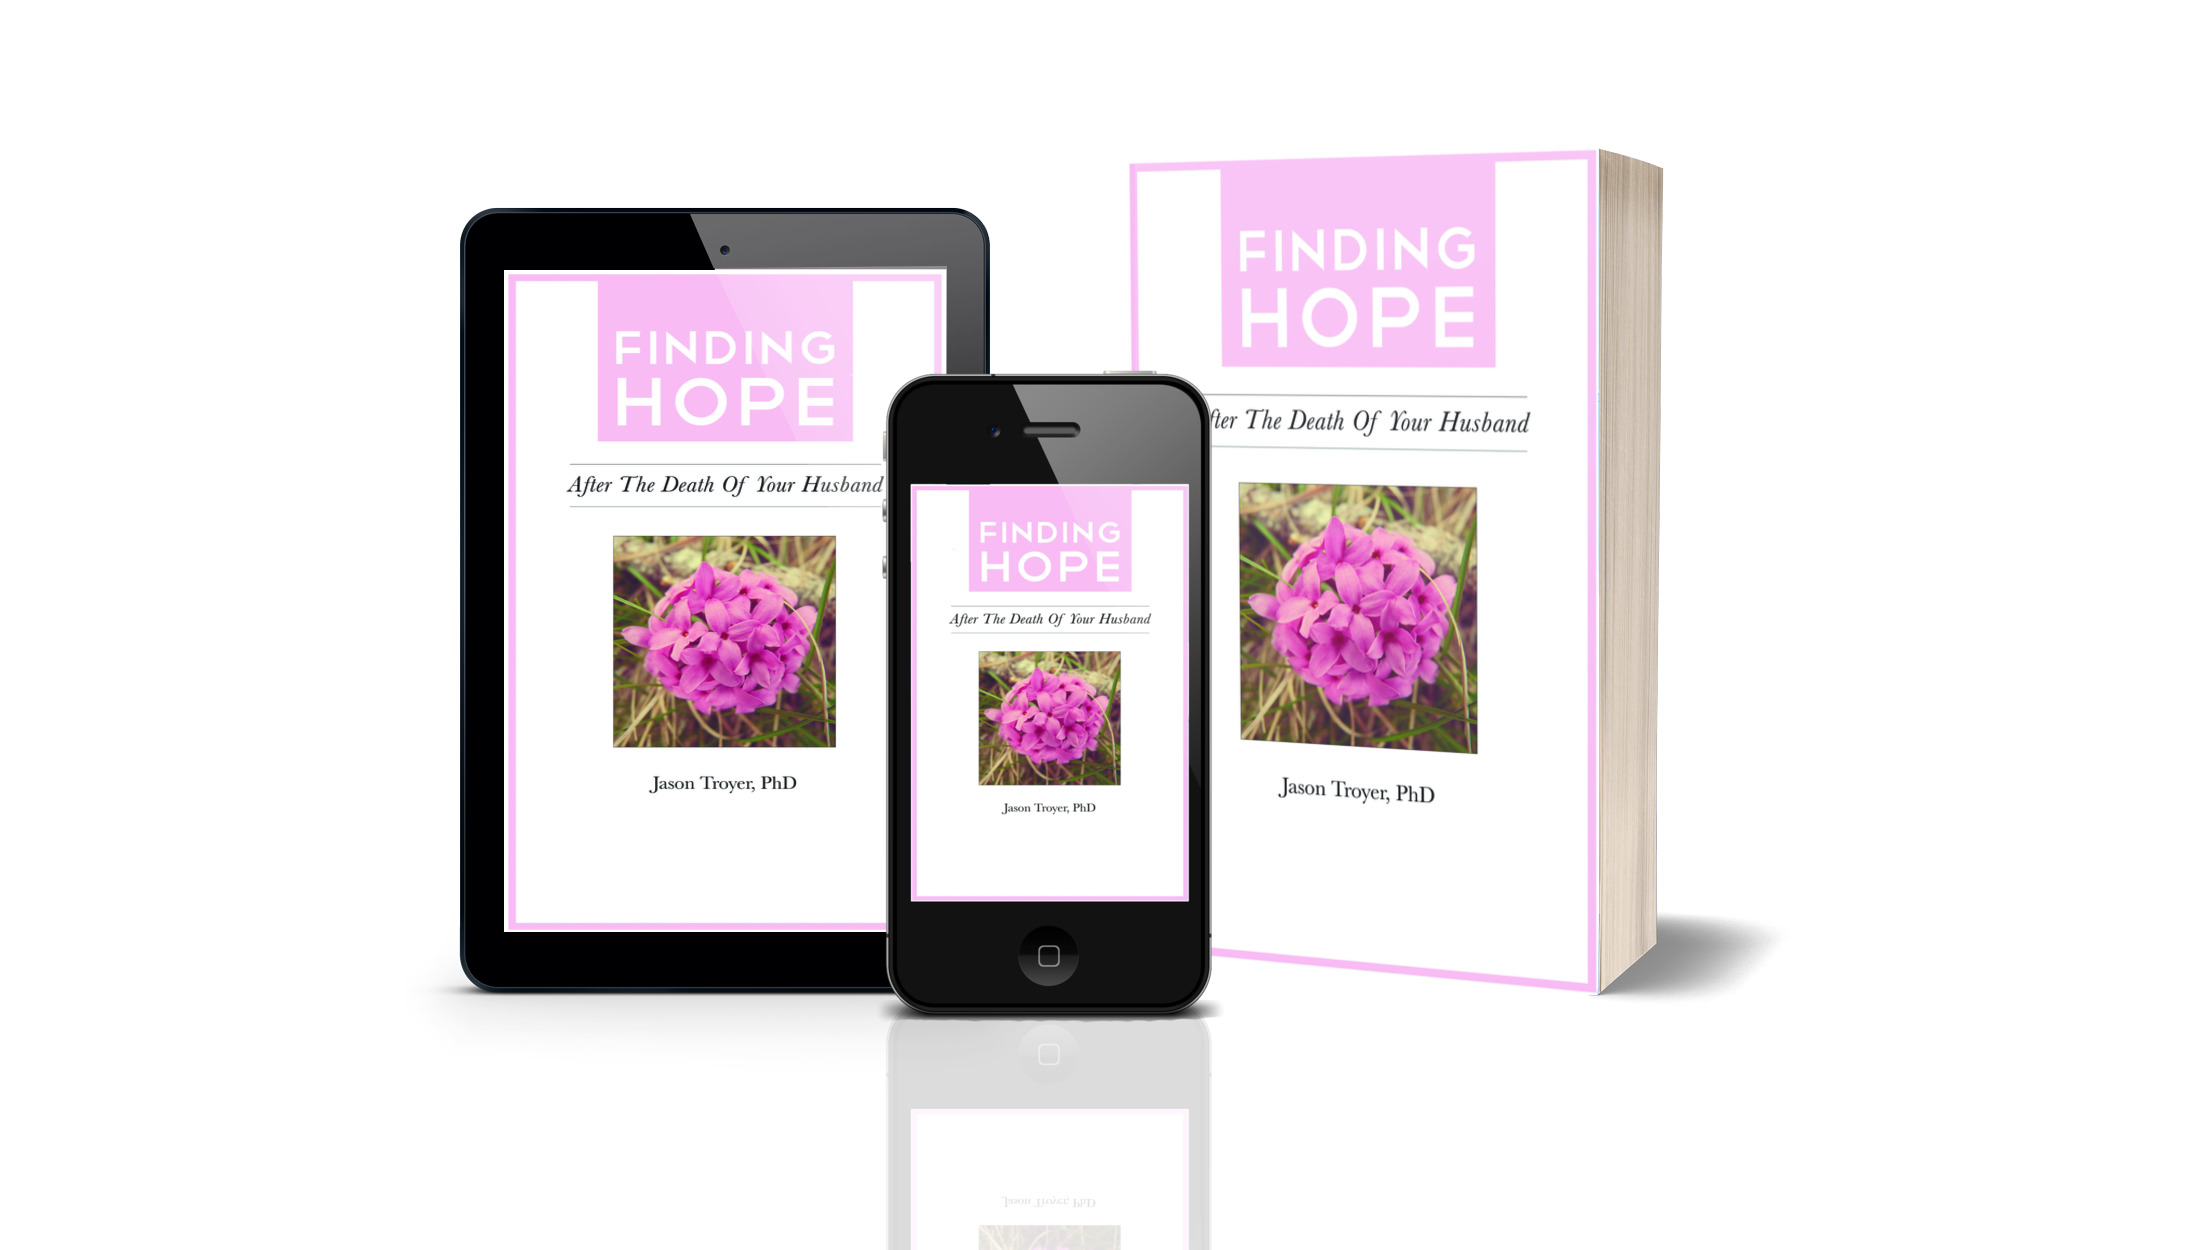 Finding Hope after the Loss of a Husband - Click Here to Download